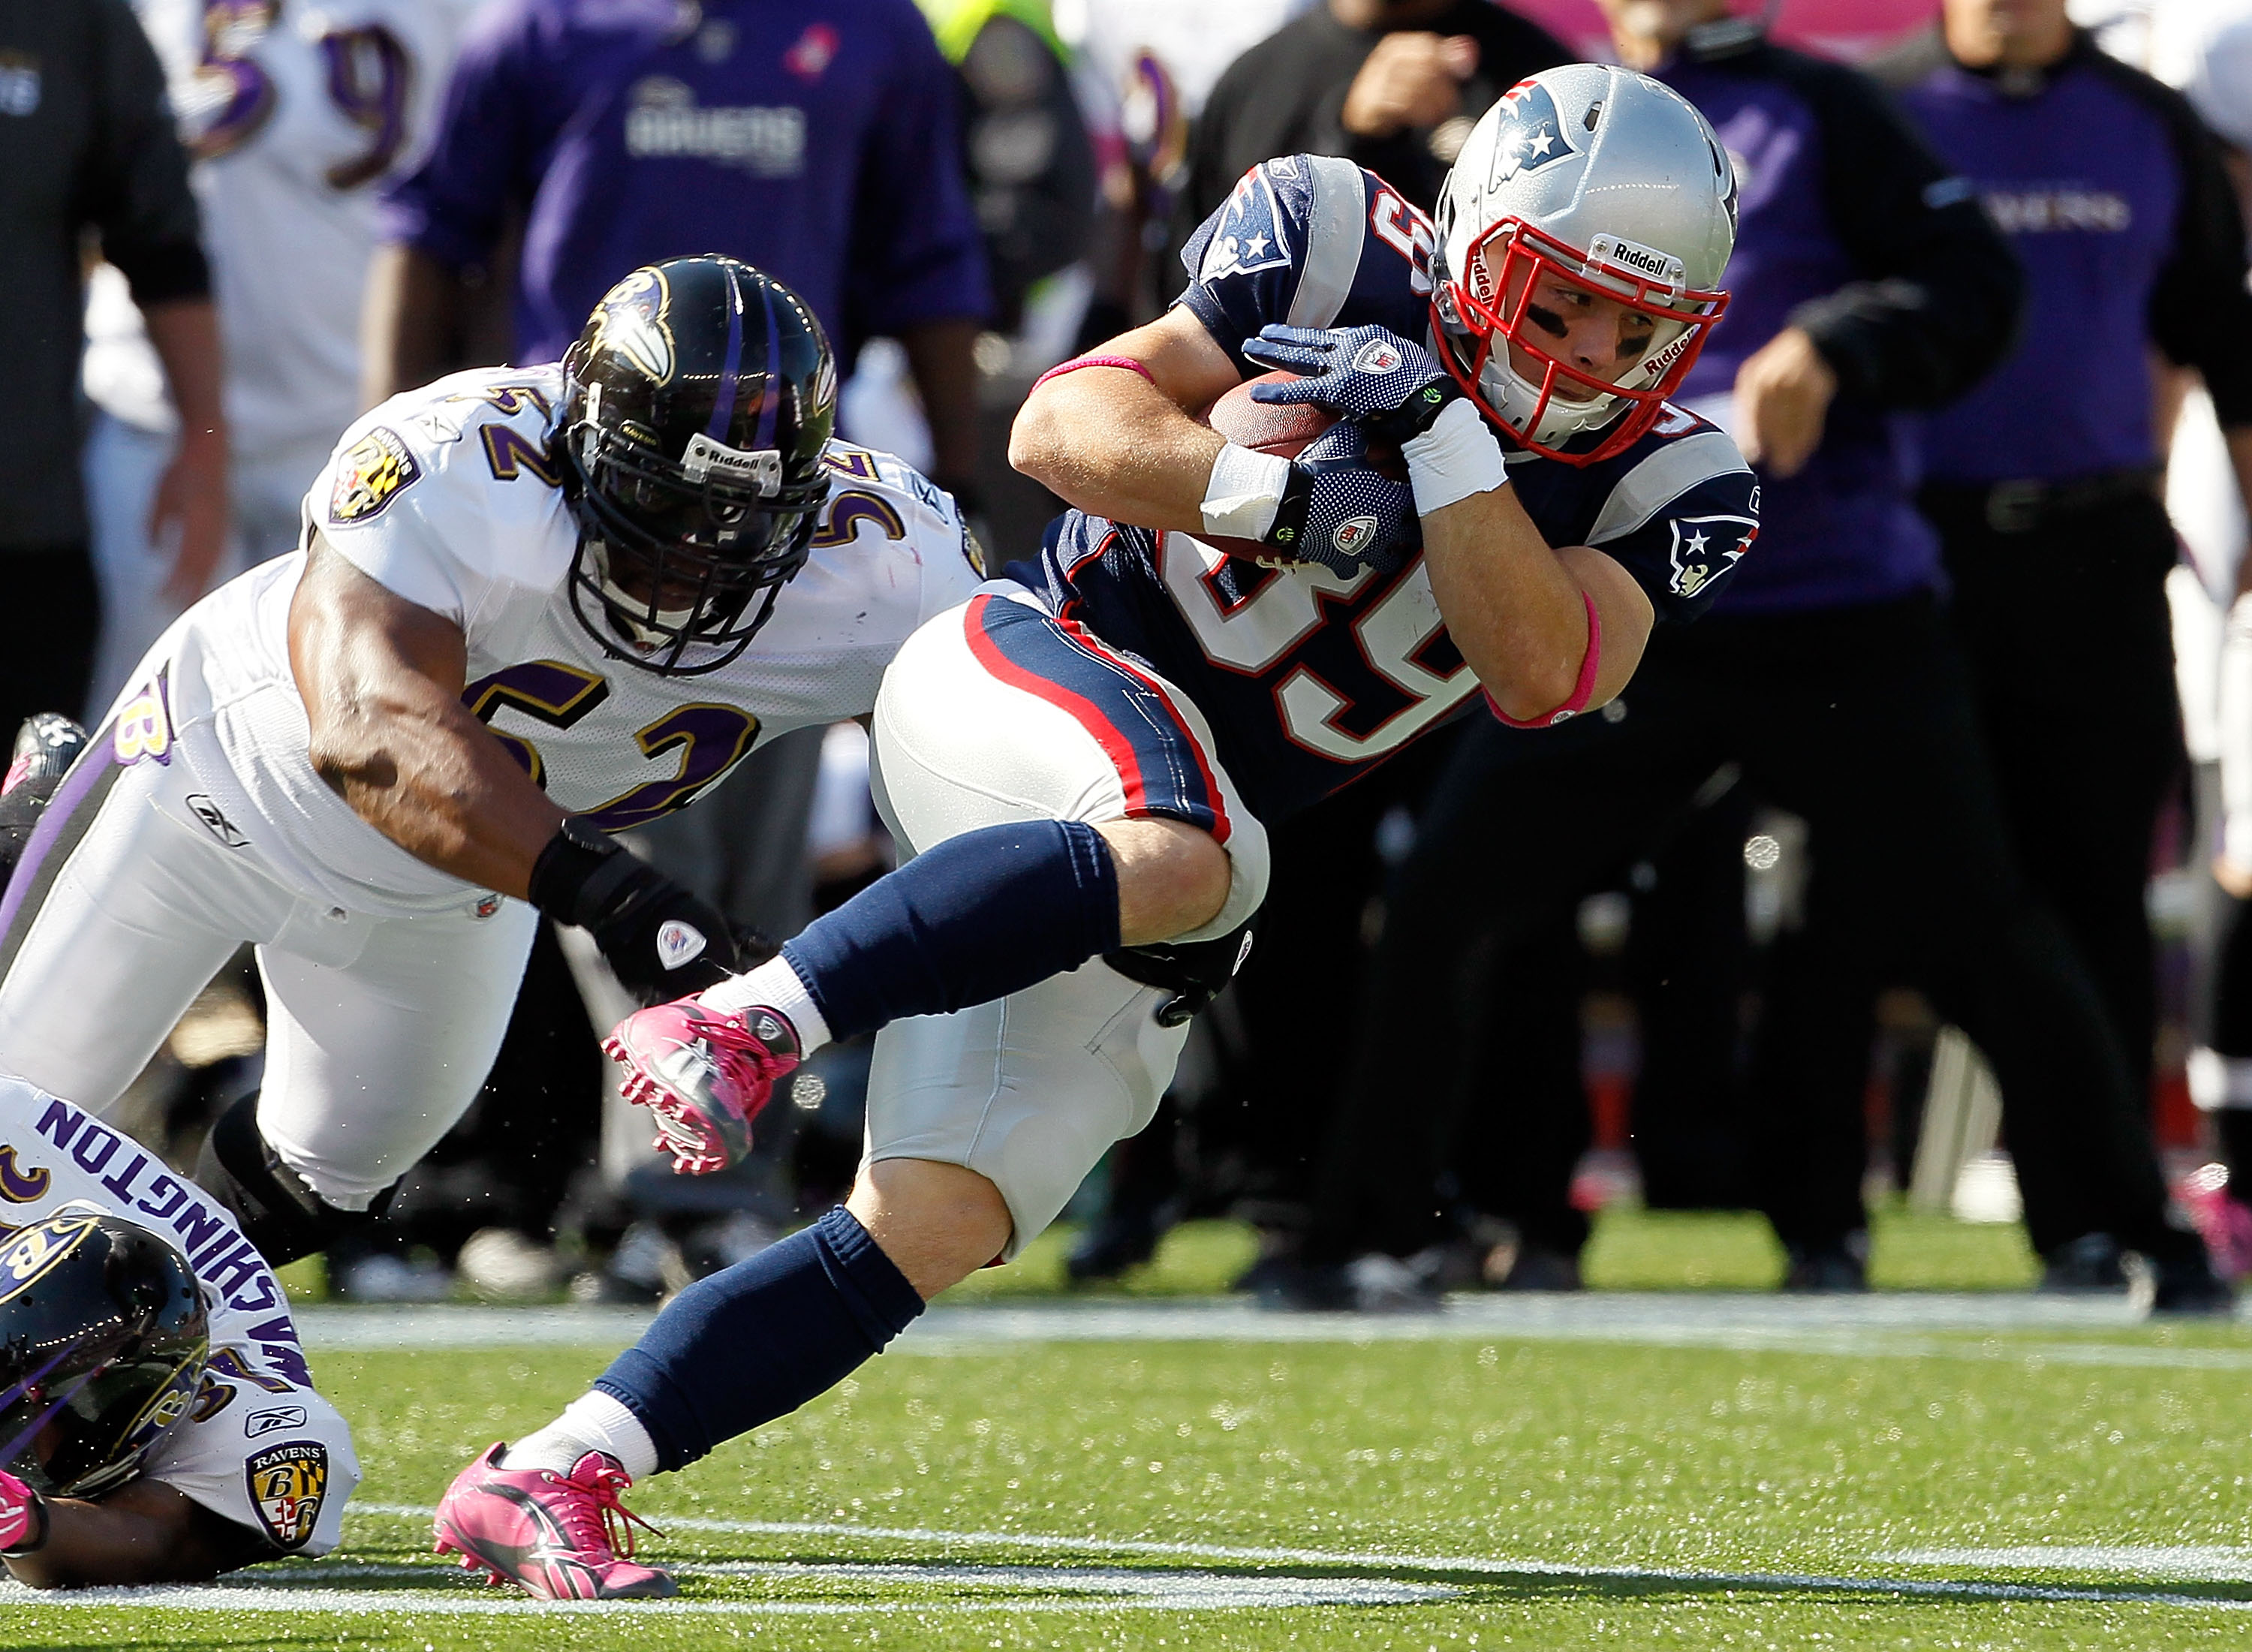 FOXBORO, MA - OCTOBER 17:  Danny Woodhead #39 of the New England Patriots is caught by Ray Lewis #52 of the Baltimore Ravens in the first second half at Gillette Stadium on October 17, 2010 in Foxboro, Massachusetts. The Patriot won 23-20 in overtime.  (P